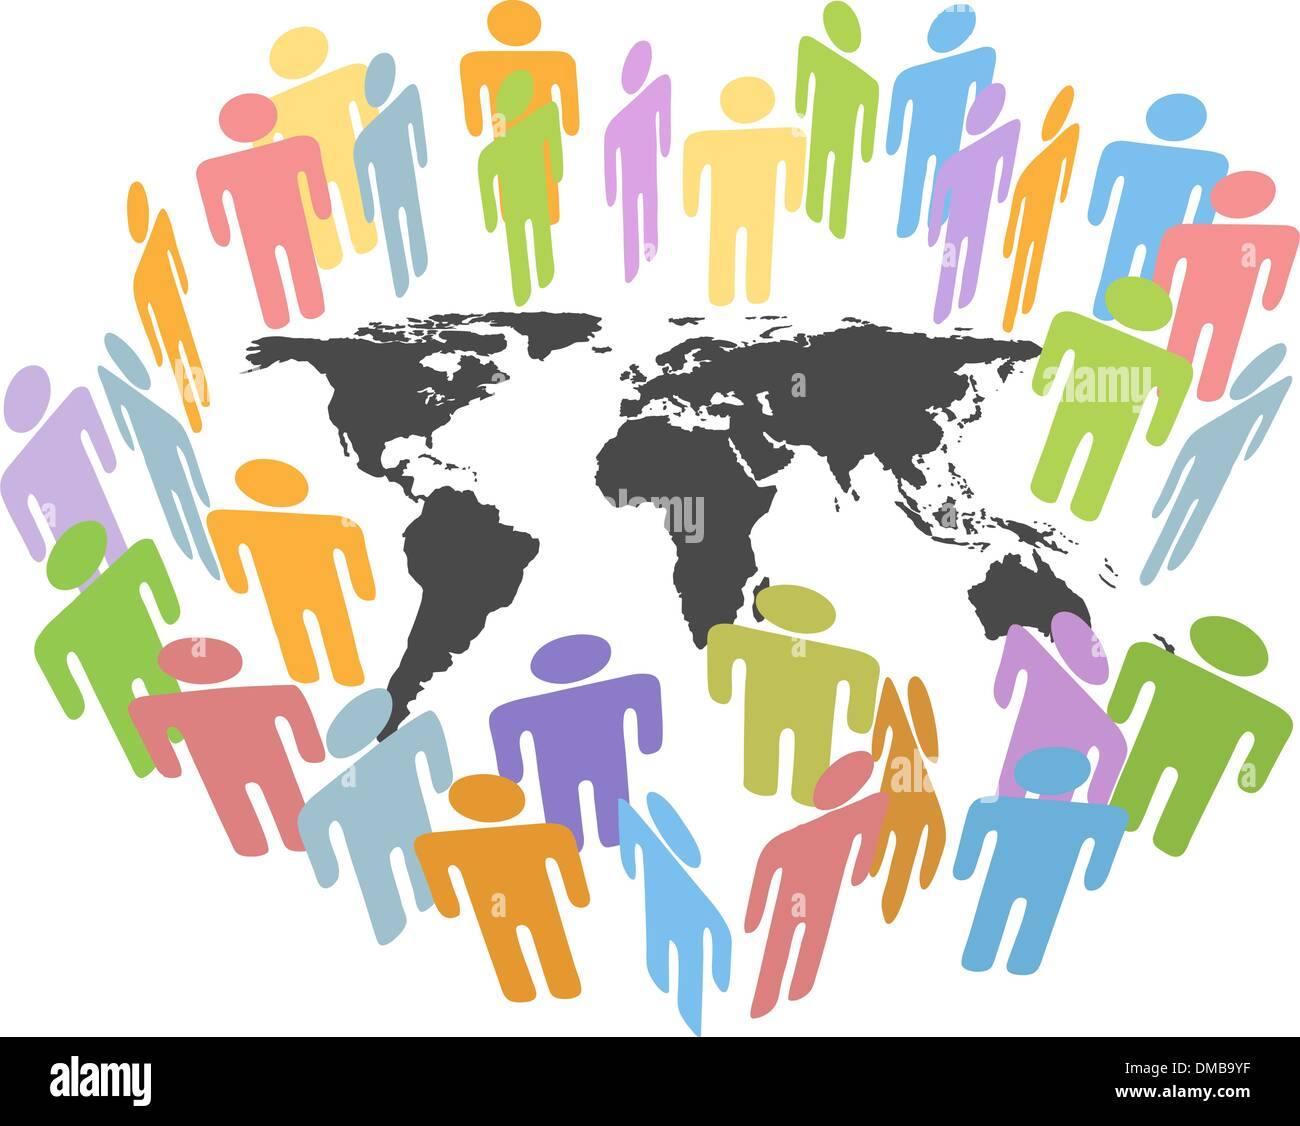 Global human population Earth issues people map - Stock Vector